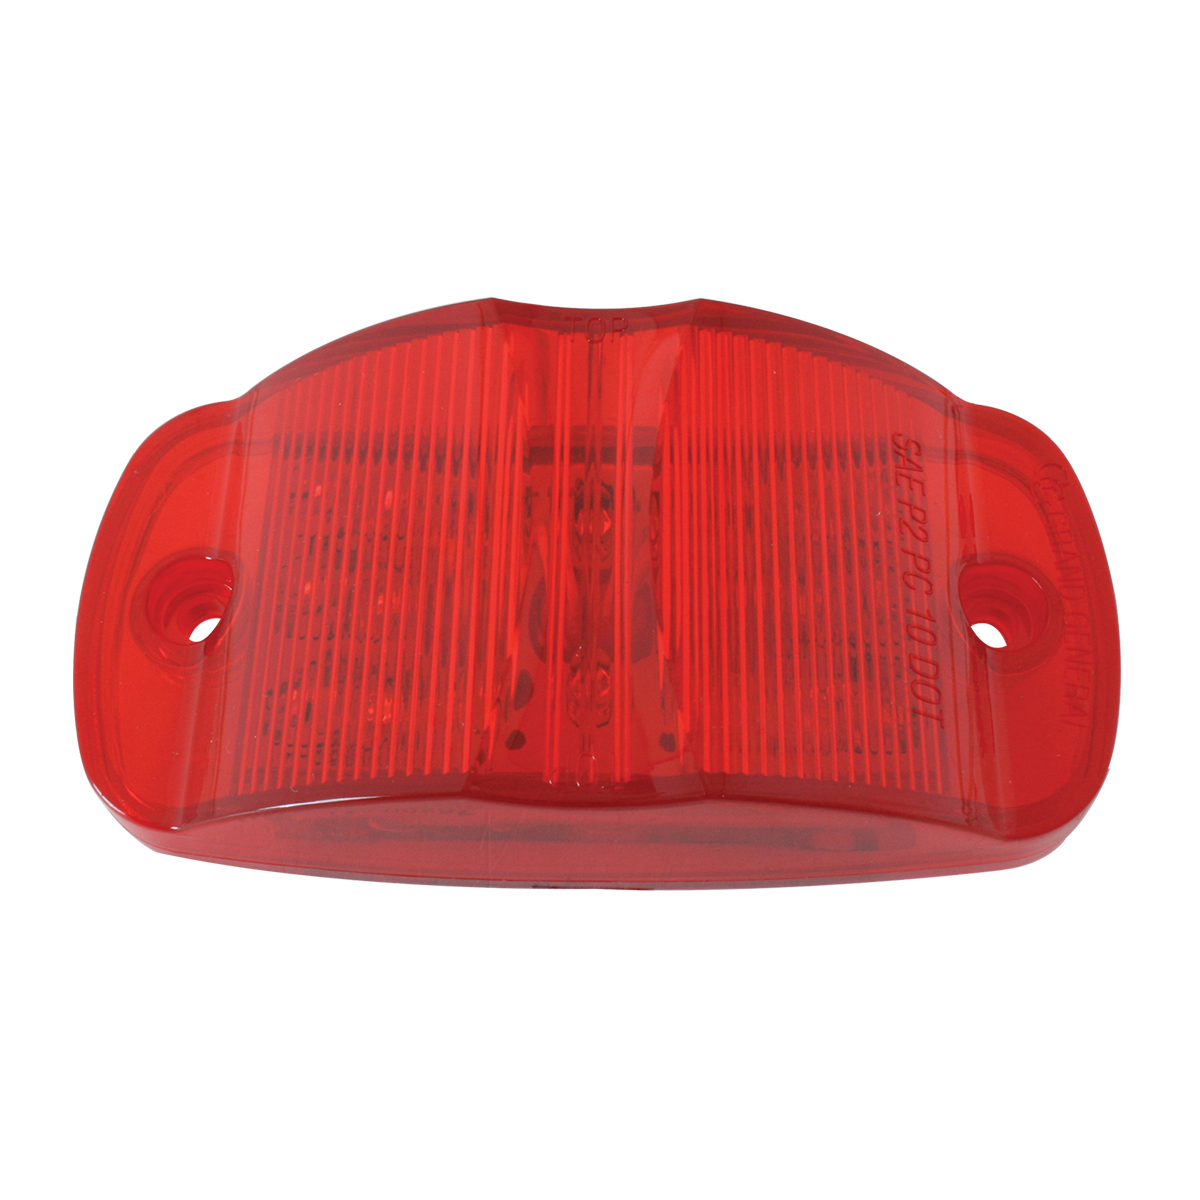 Rectangular Camel Back Wide Angle LED Marker Light in Red/Red